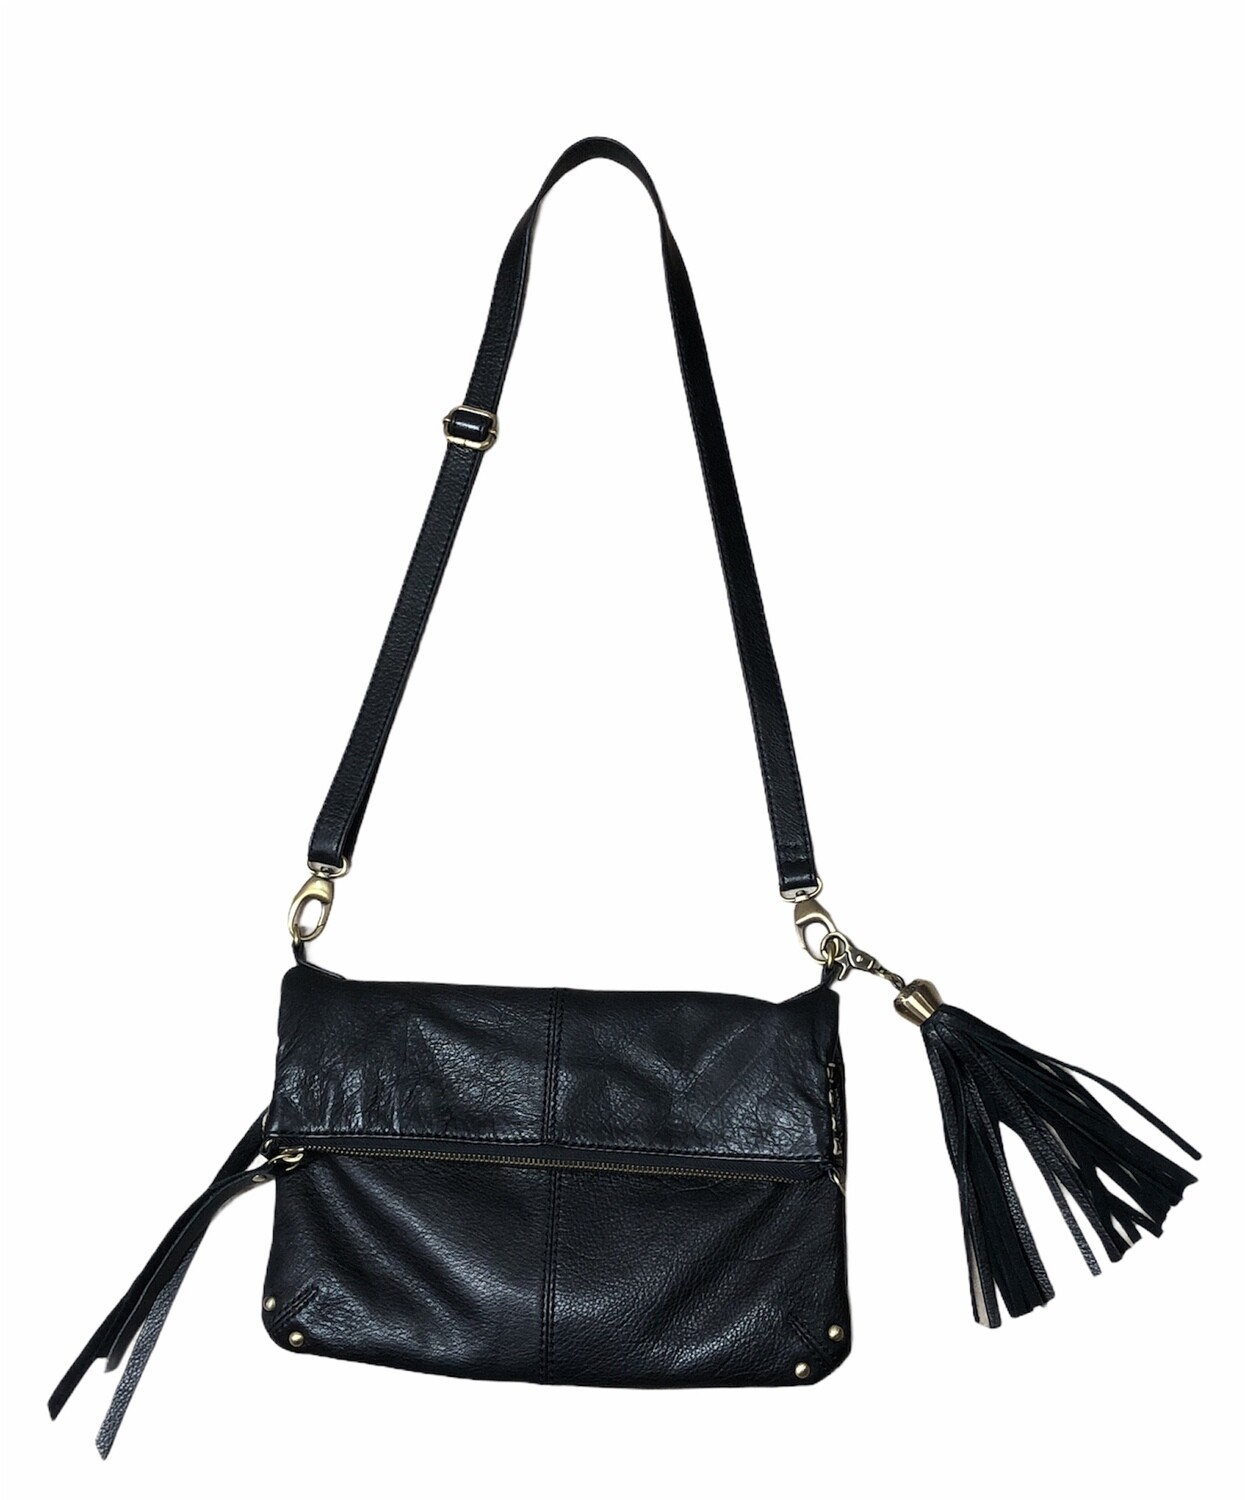 LUCKY BRAND Black Leather Fold-Over Crossbody Handbag